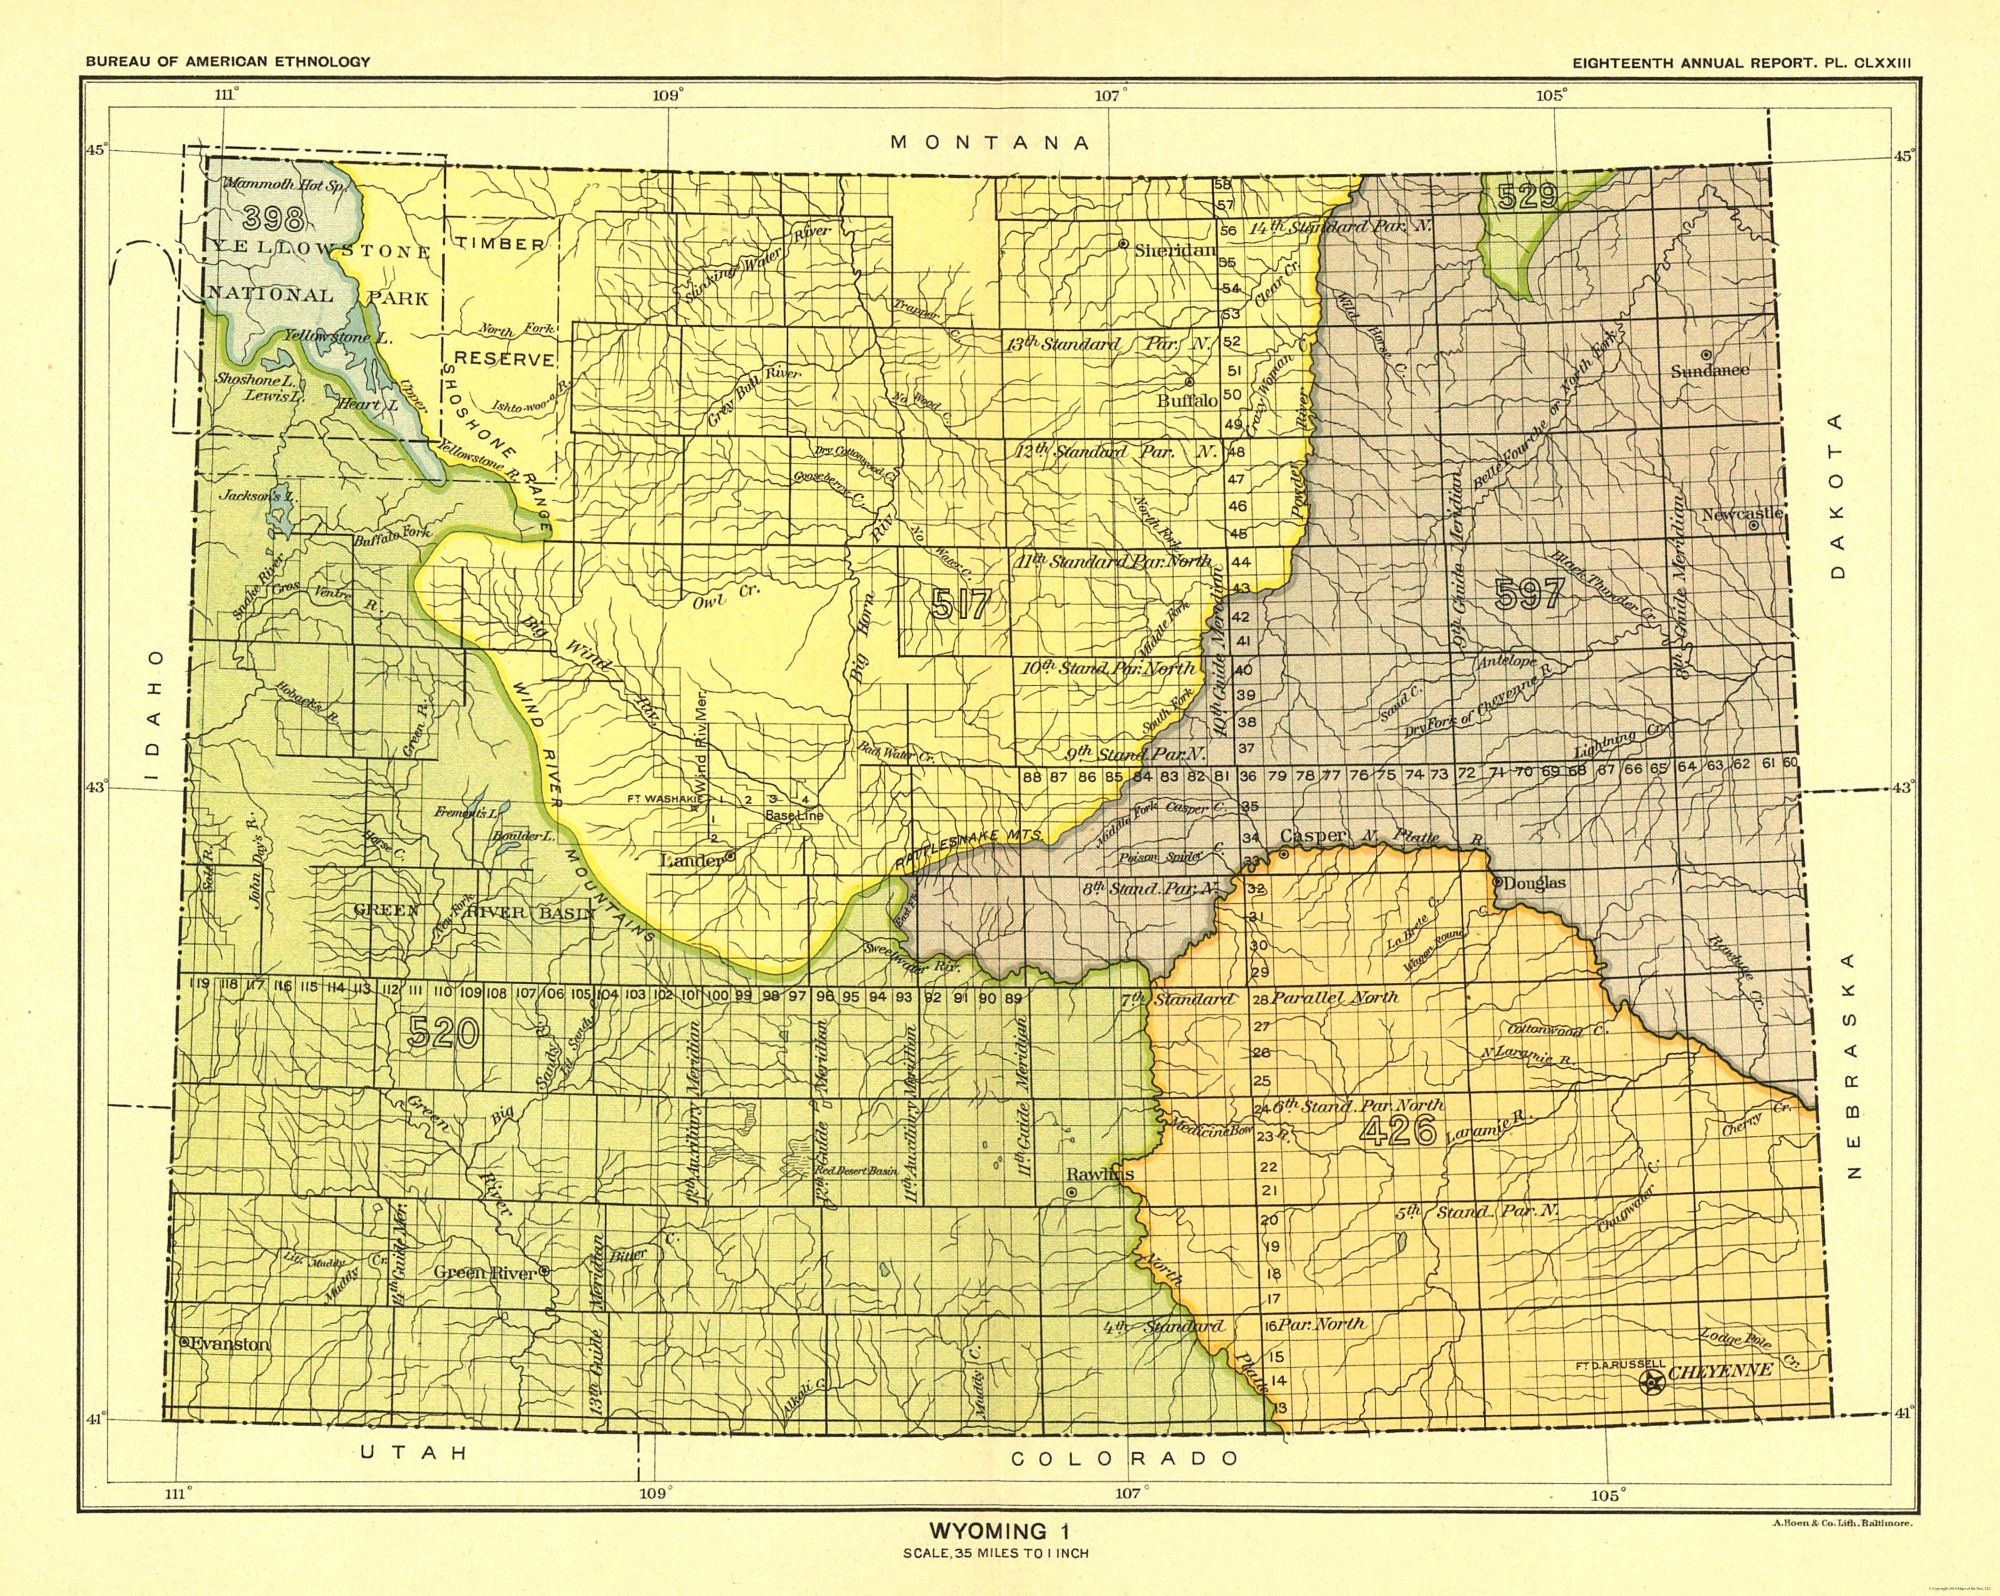 Old State Map - Wyoming - Yellowstone National Park - Hoen 1896 - 28.82 on park yellowstone river map, boiling river map, new york boundaries map, salt lake city boundaries map, illinois boundaries map, seattle boundaries map, texas boundaries map, flathead indian reservation boundaries map, las vegas boundaries map, massachusetts boundaries map, hollywood boundaries map, state time zone map, united states boundaries map, phoenix boundaries map, madison junction yellowstone ranger station map, new mexico boundaries map, california boundaries map, pennsylvania boundaries map,